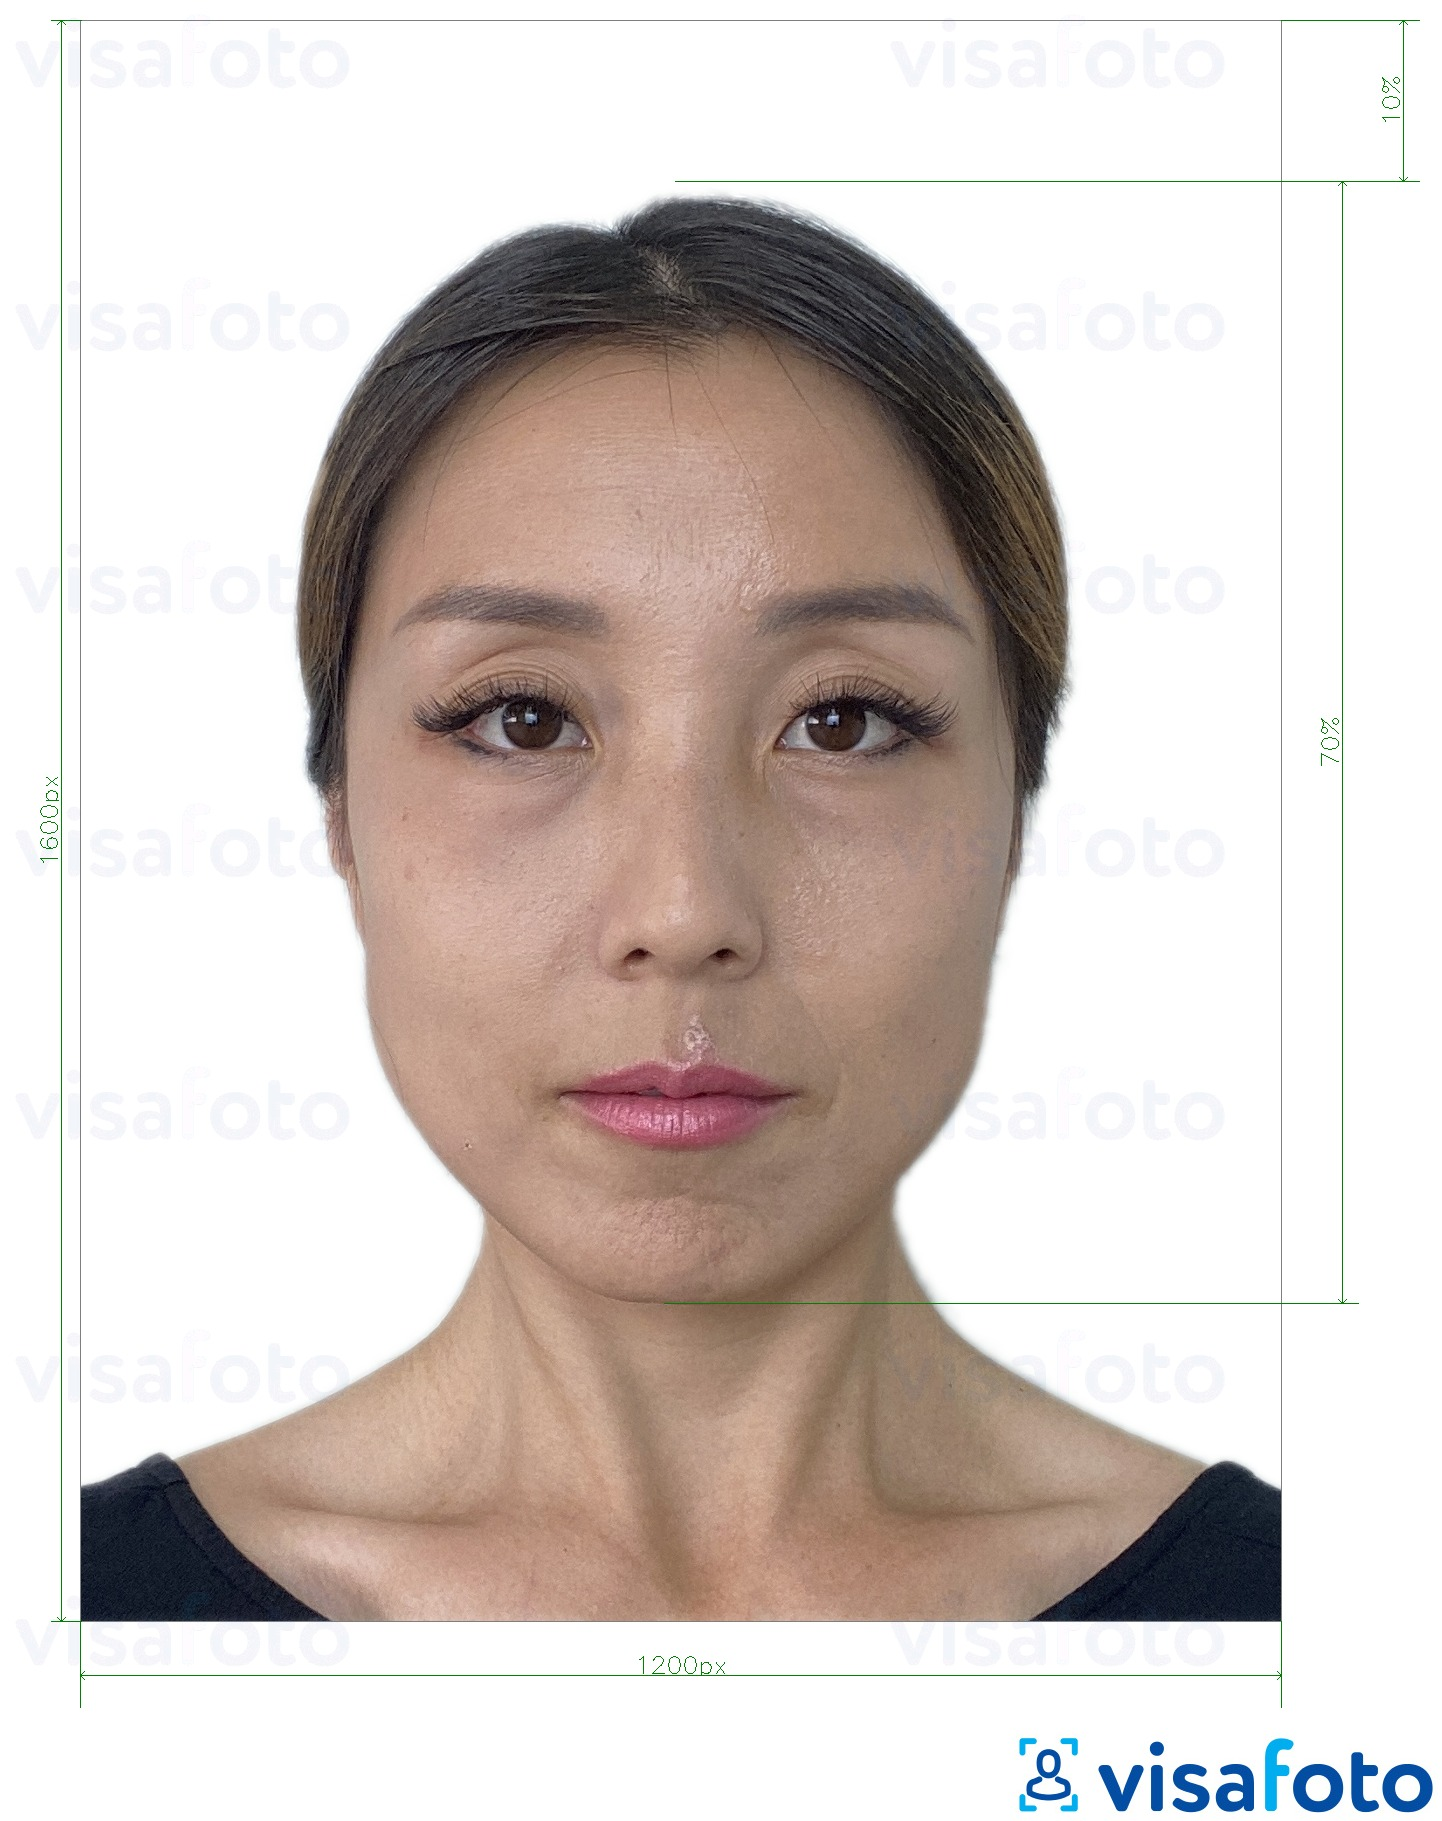 Example of photo for Hong Kong online e-passport 1200x1600 pixels with exact size specification